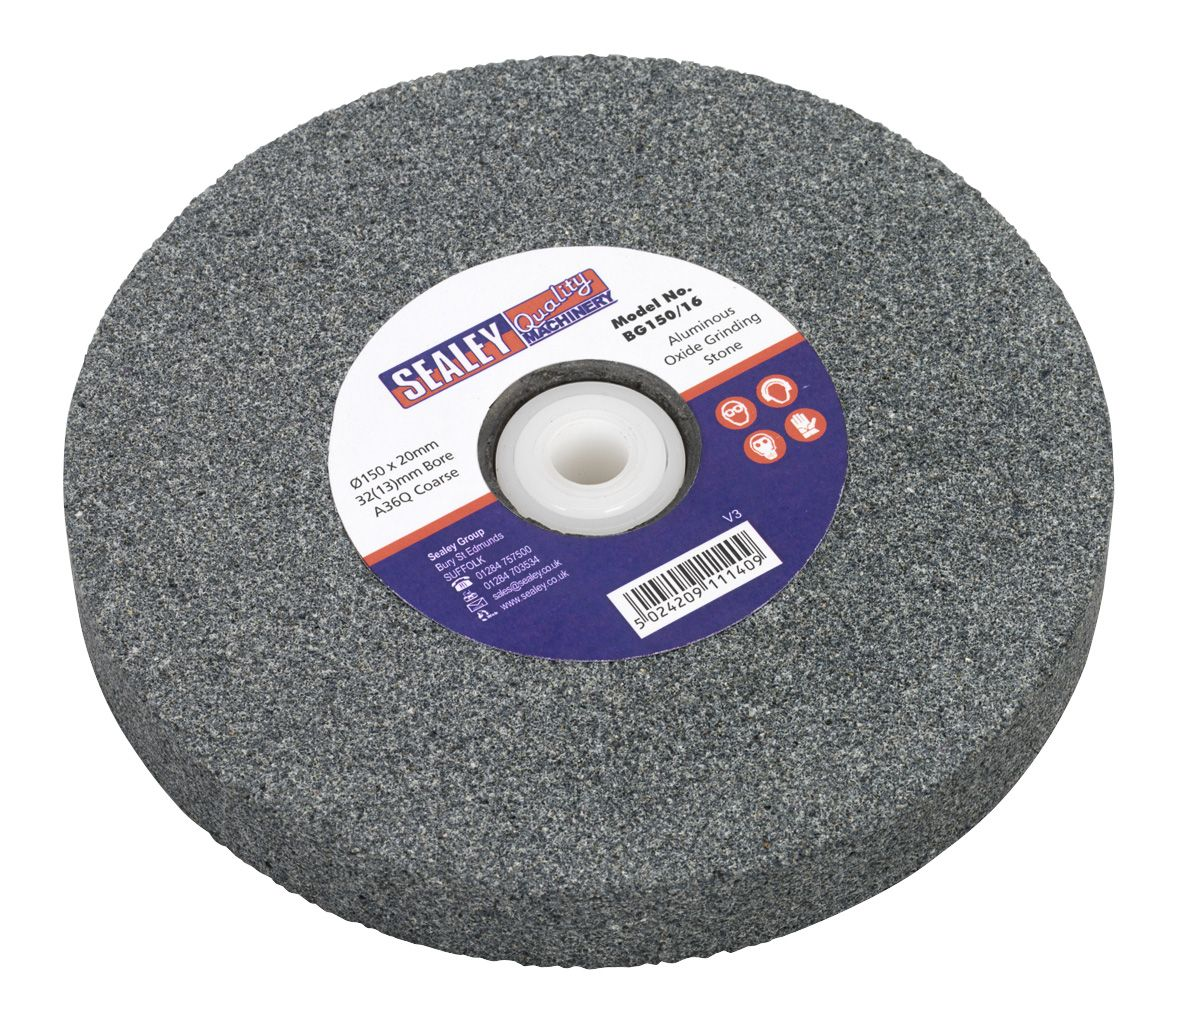 Sealey Grinding Stone 150 x 20mm 32(13)mm Bore